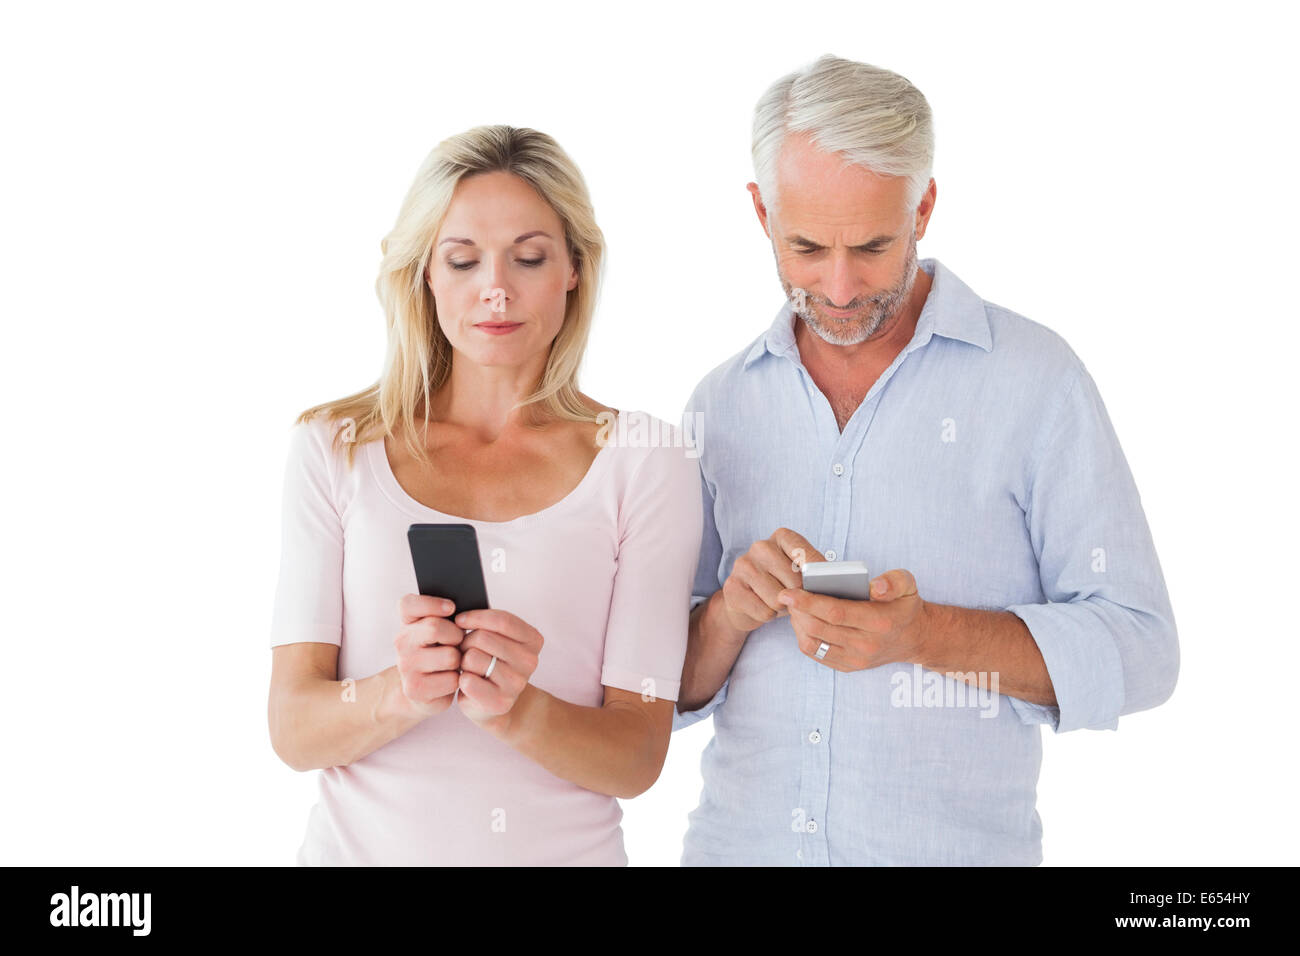 Happy couple texting on their smartphones - Stock Image